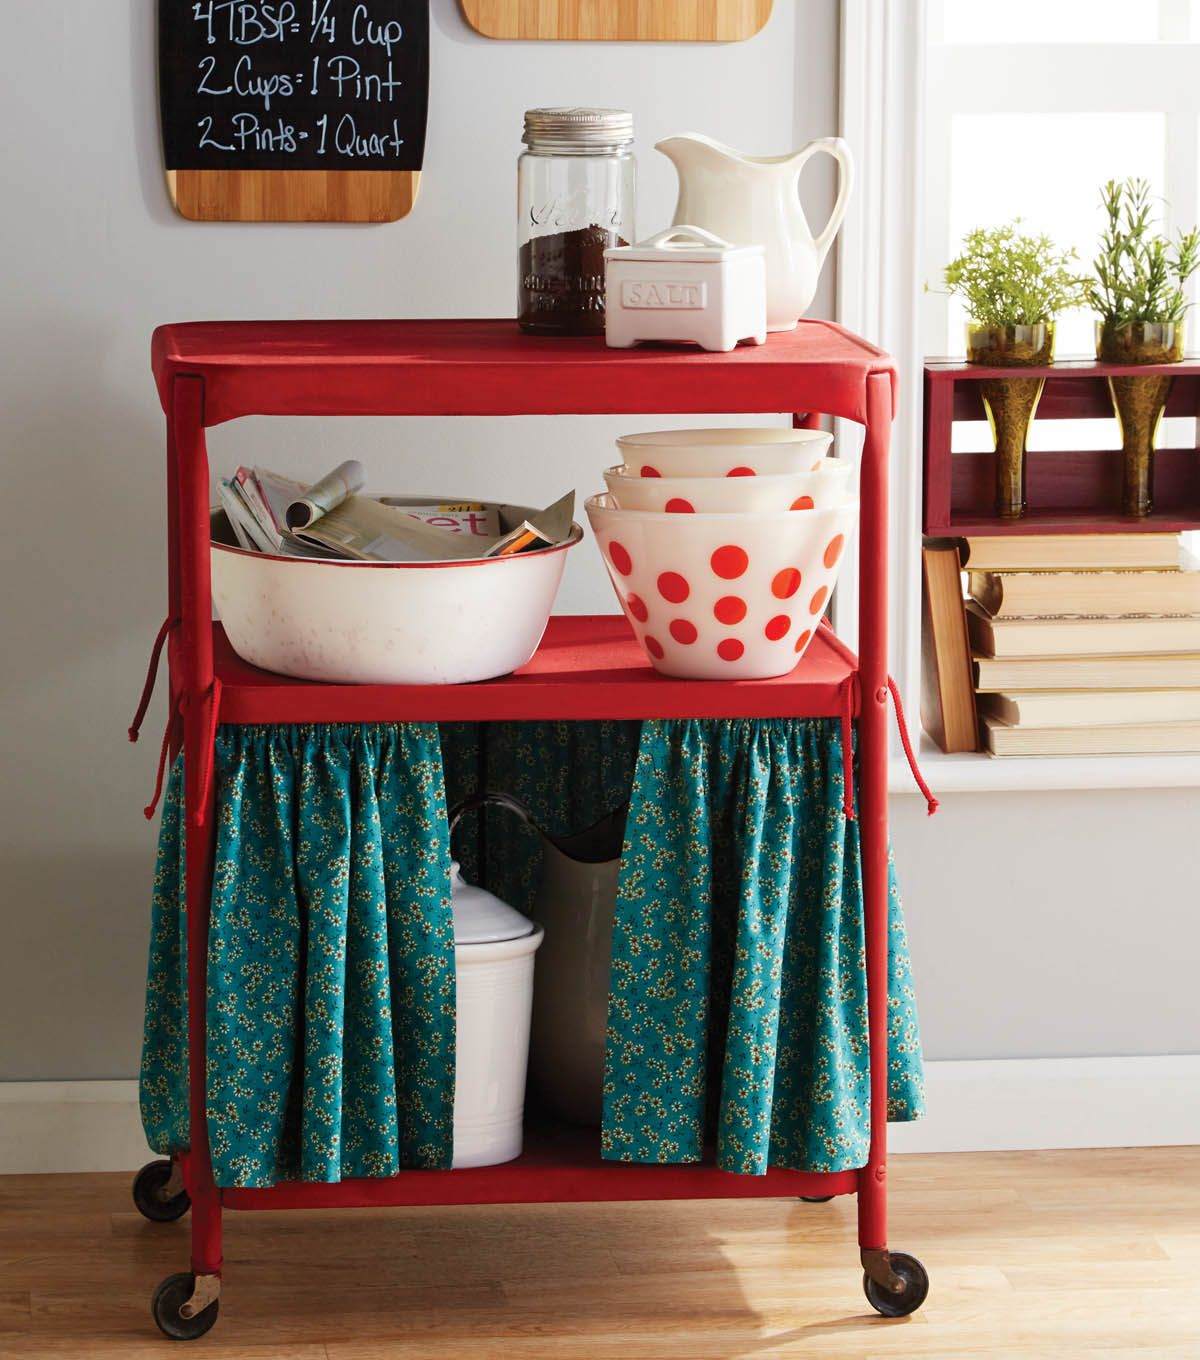 upcycle an old or thrifted cart into a cute diy kitchen island rh pinterest com